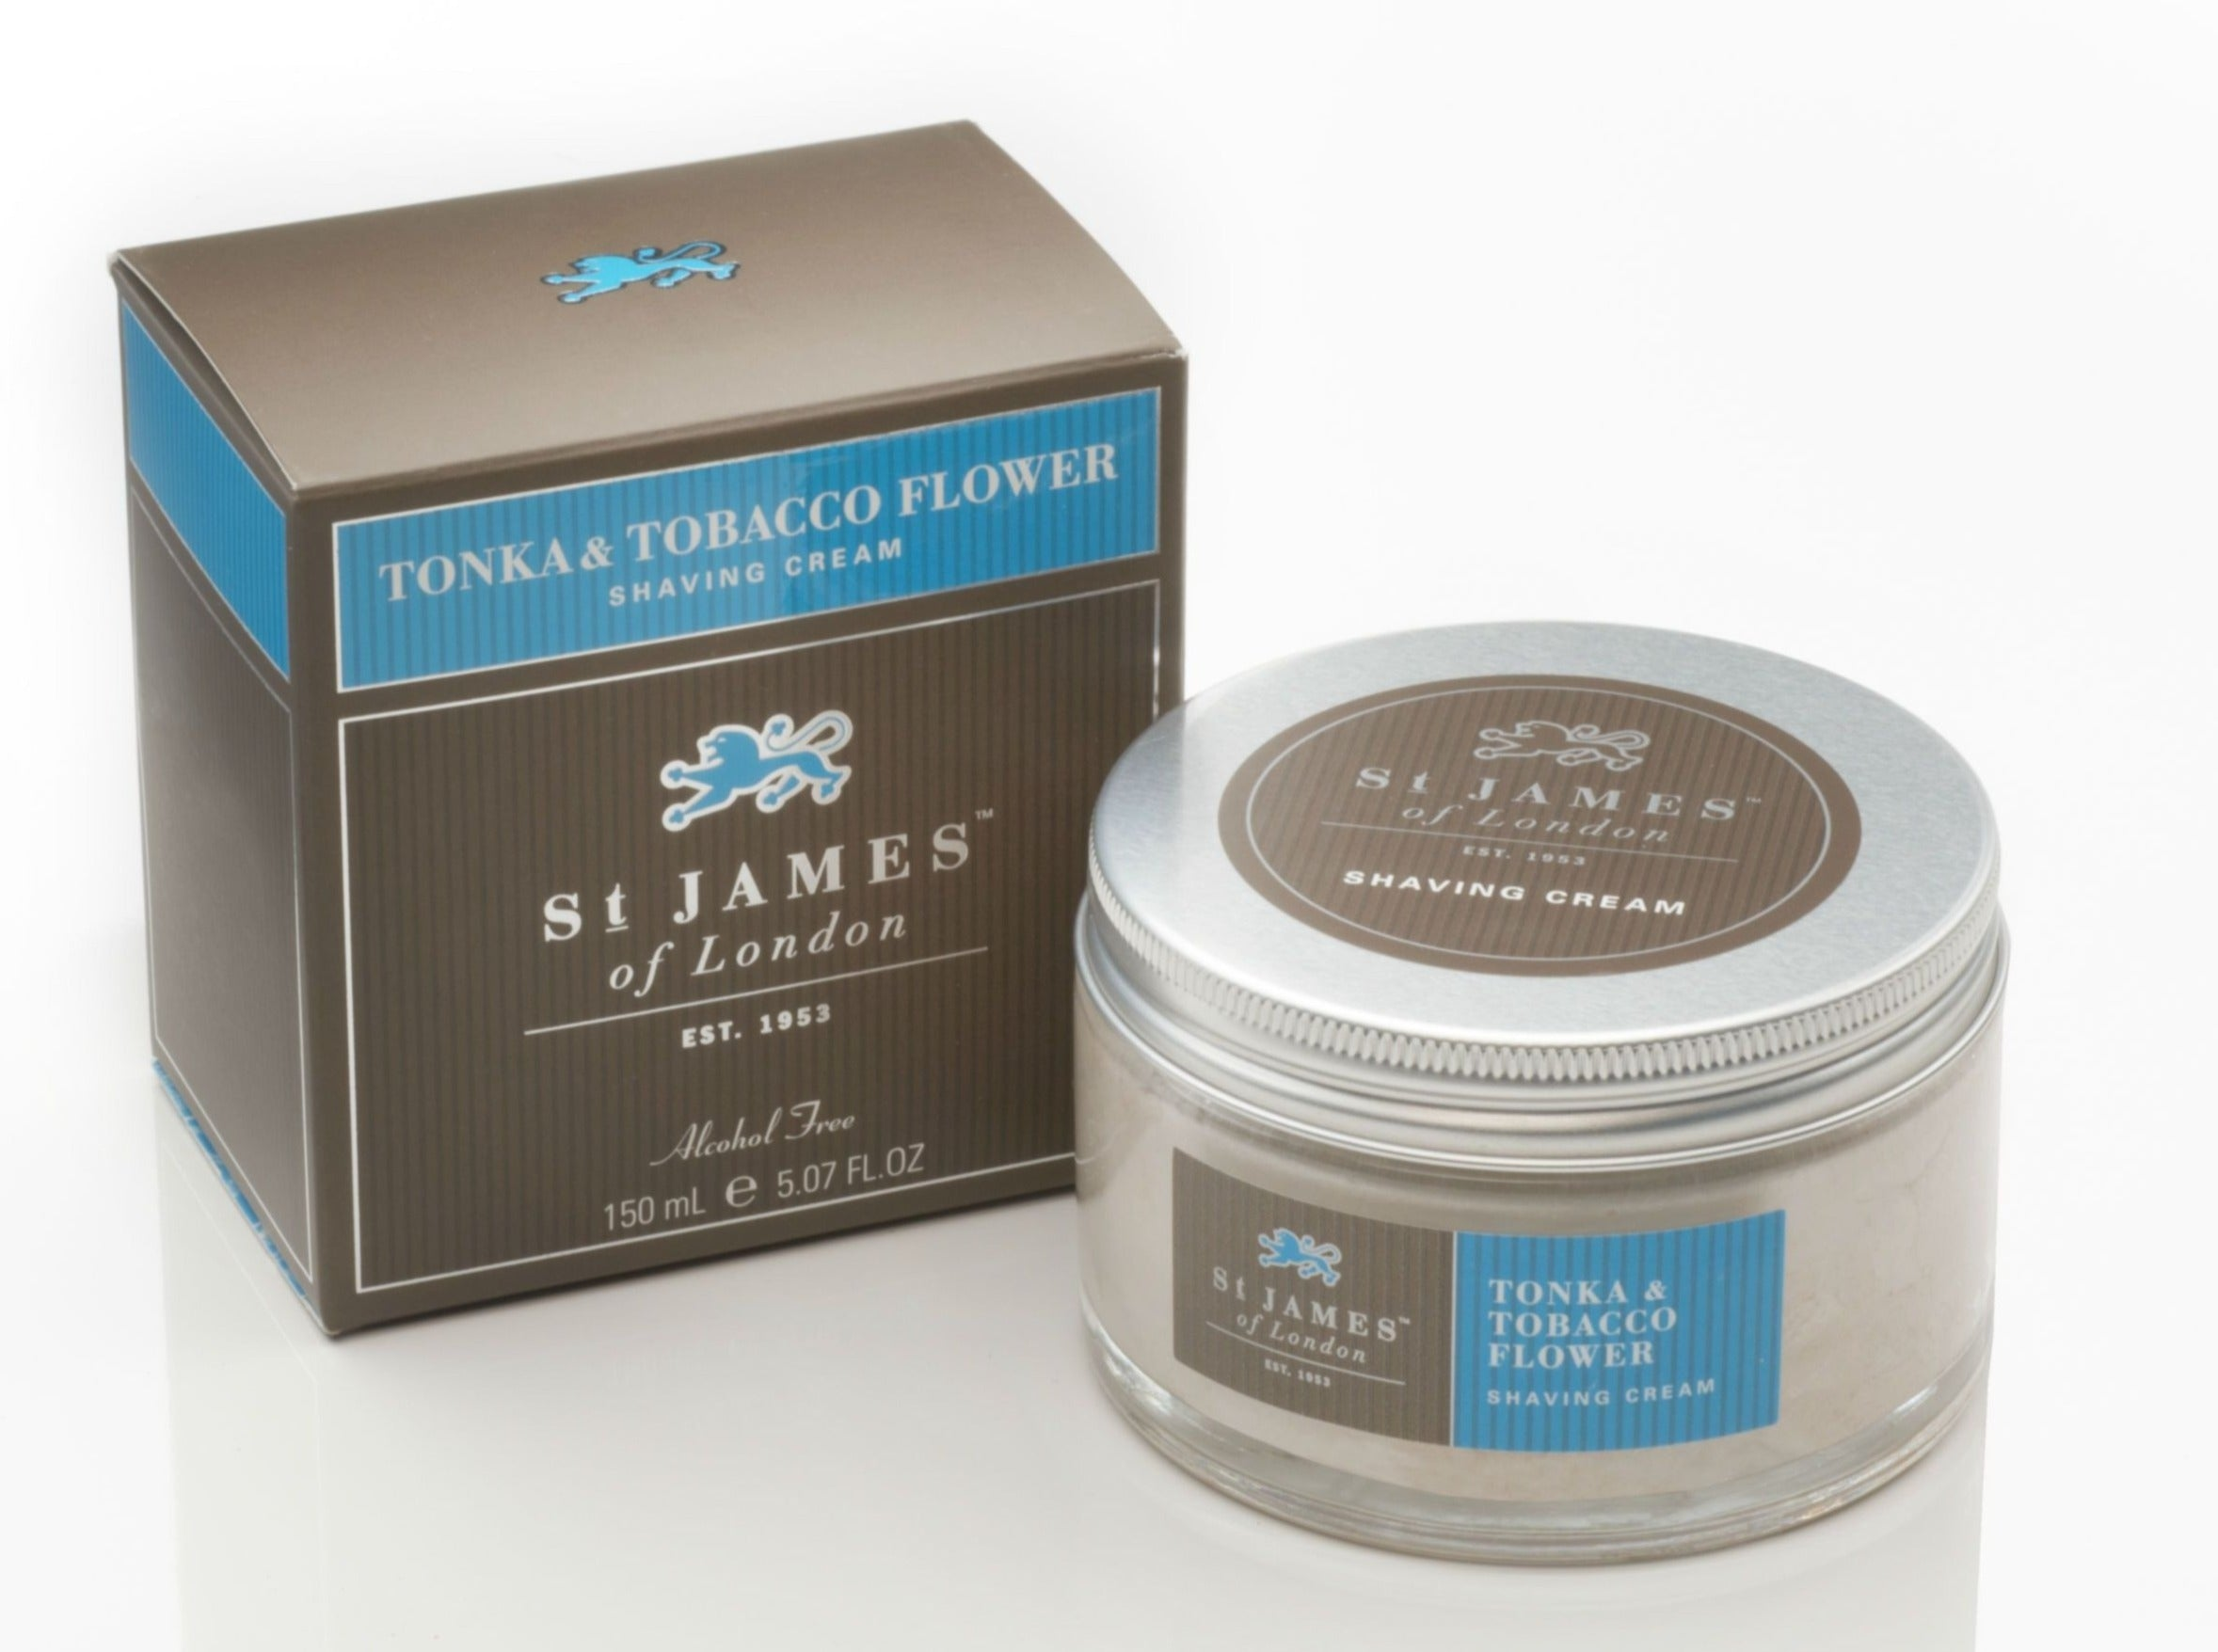 Tonka & Tabacco Flower Shave Cream Jar (4435859537974)